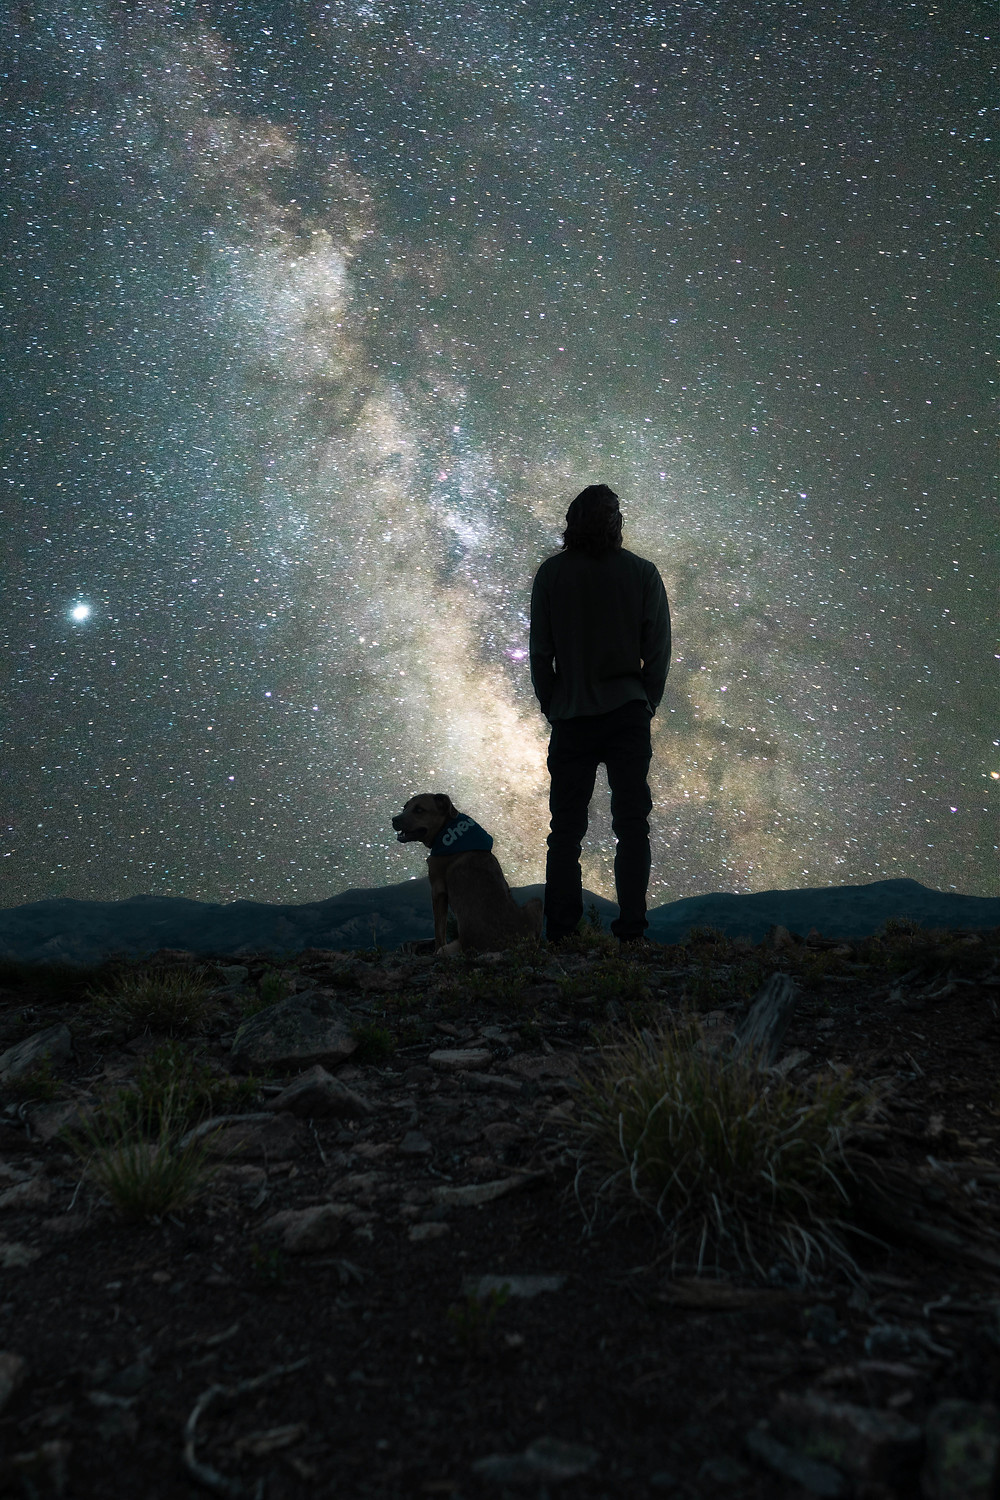 Man and dog alone under a starlit sky